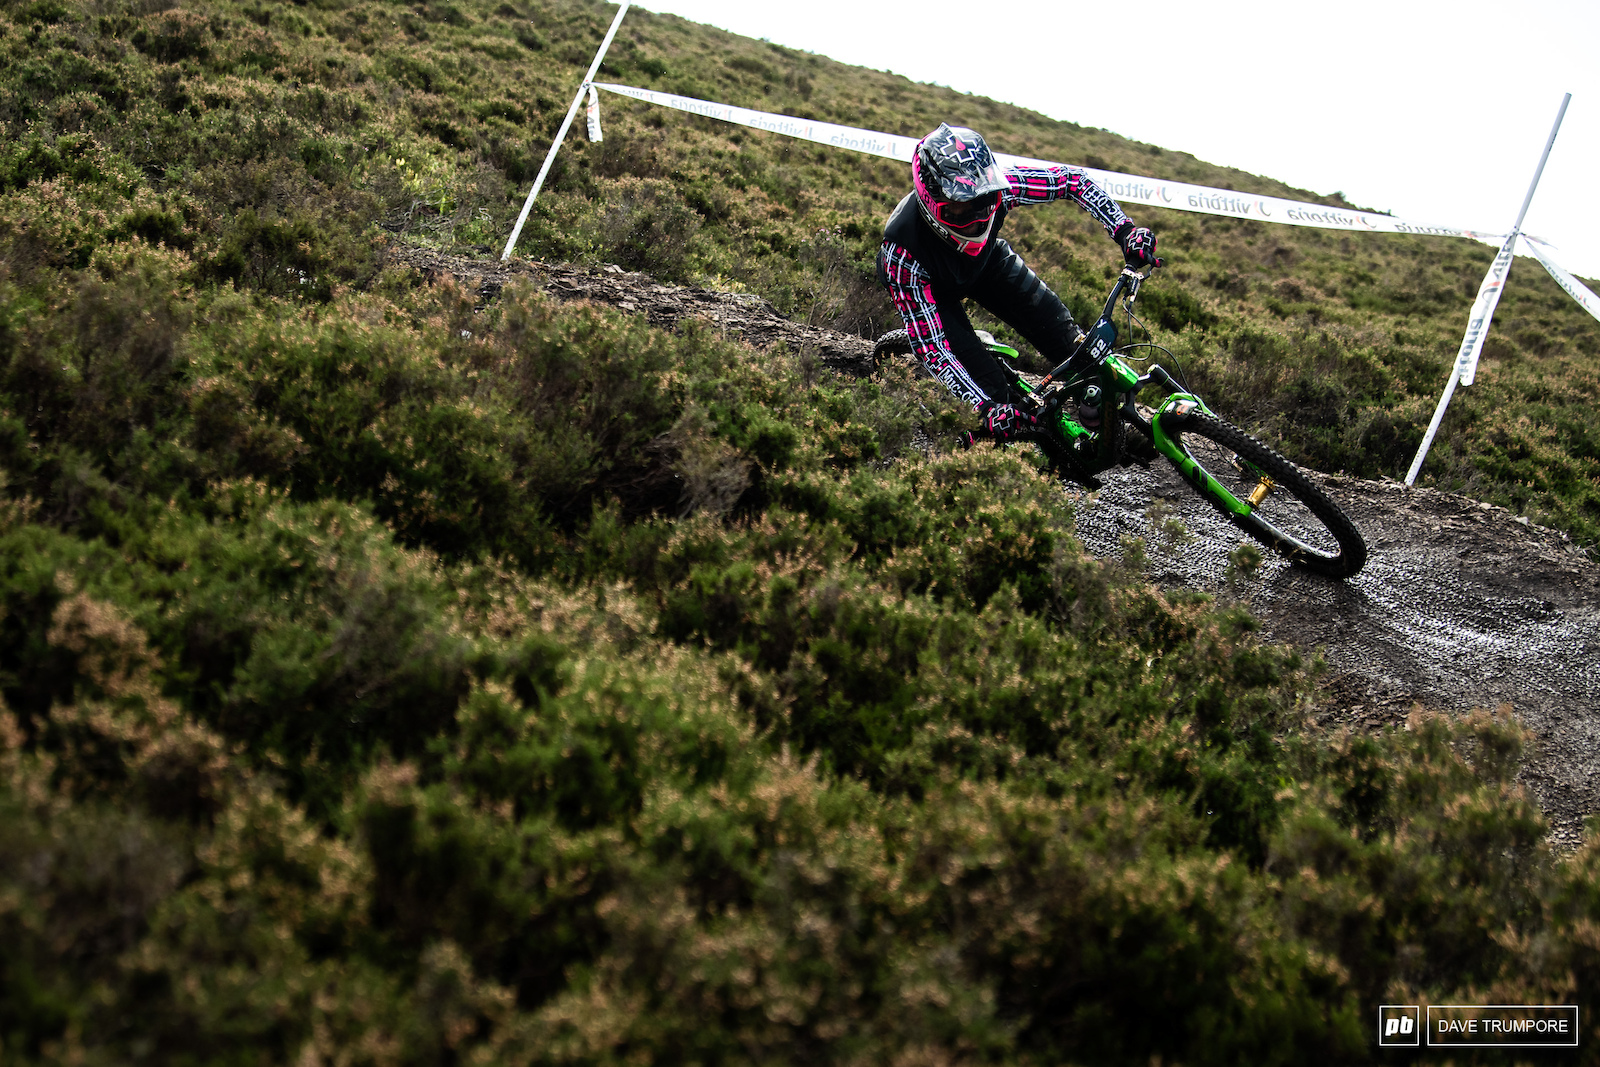 Lewis Buchanan is on home turf and looking fast at his first EWS race in almost two years